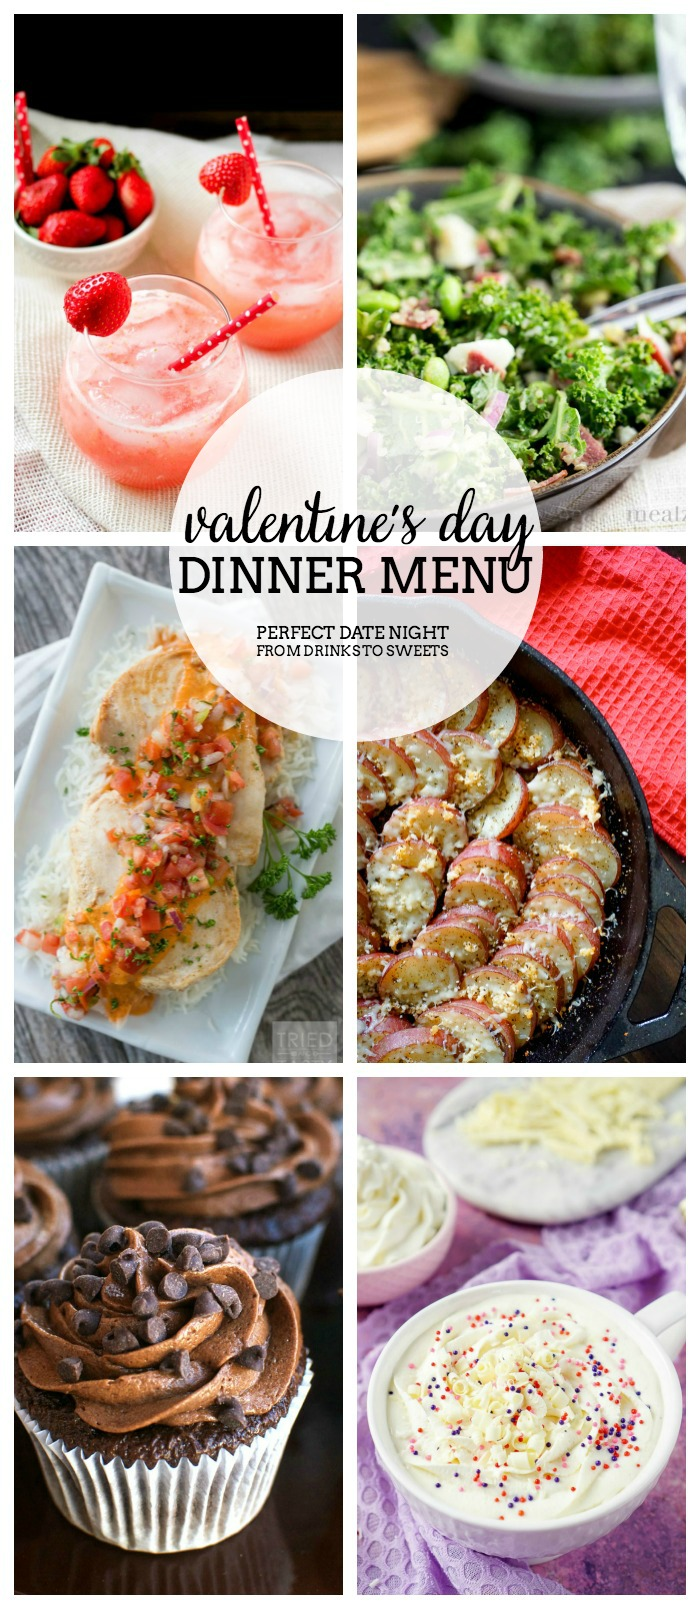 Valentine's Day Dinner Menu - We have put together the perfect date night dinner at home, from cocktails and salad to main course and dessert!